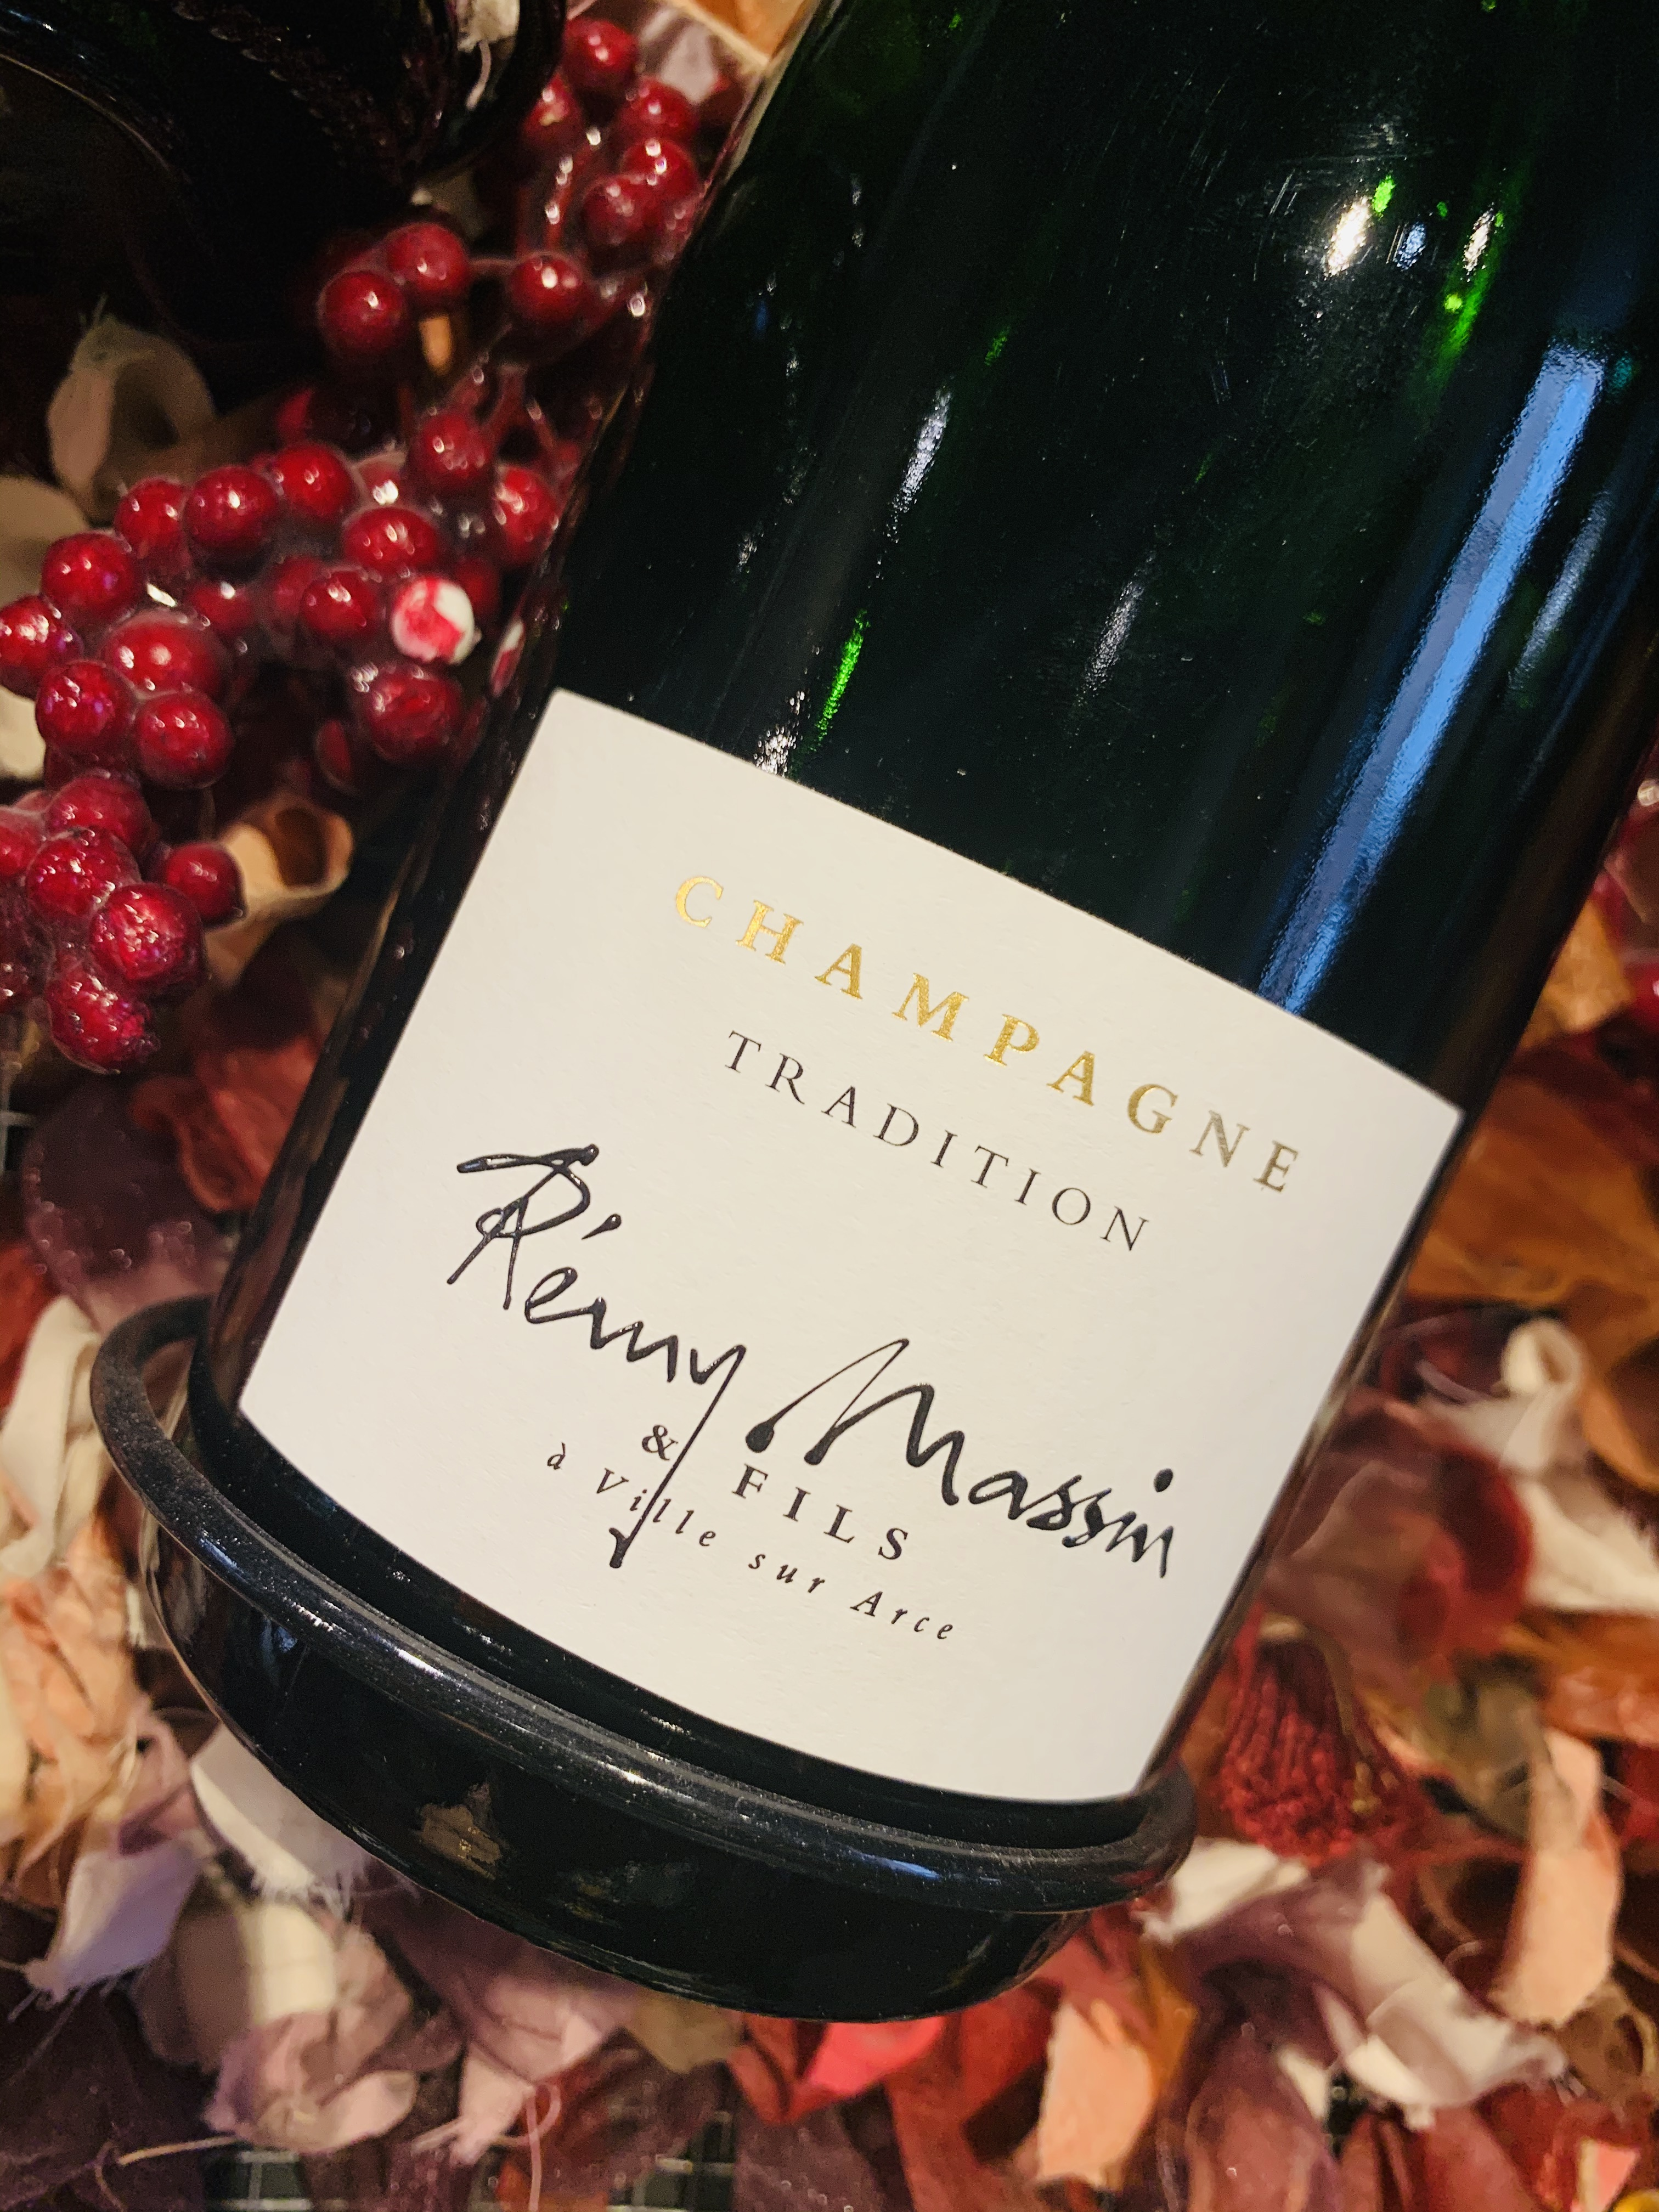 <b>CHAMPAGNE</b><br /><b>RÉMY MASSIN</b><br />Tradition Brut <br />Bouteille 75cl